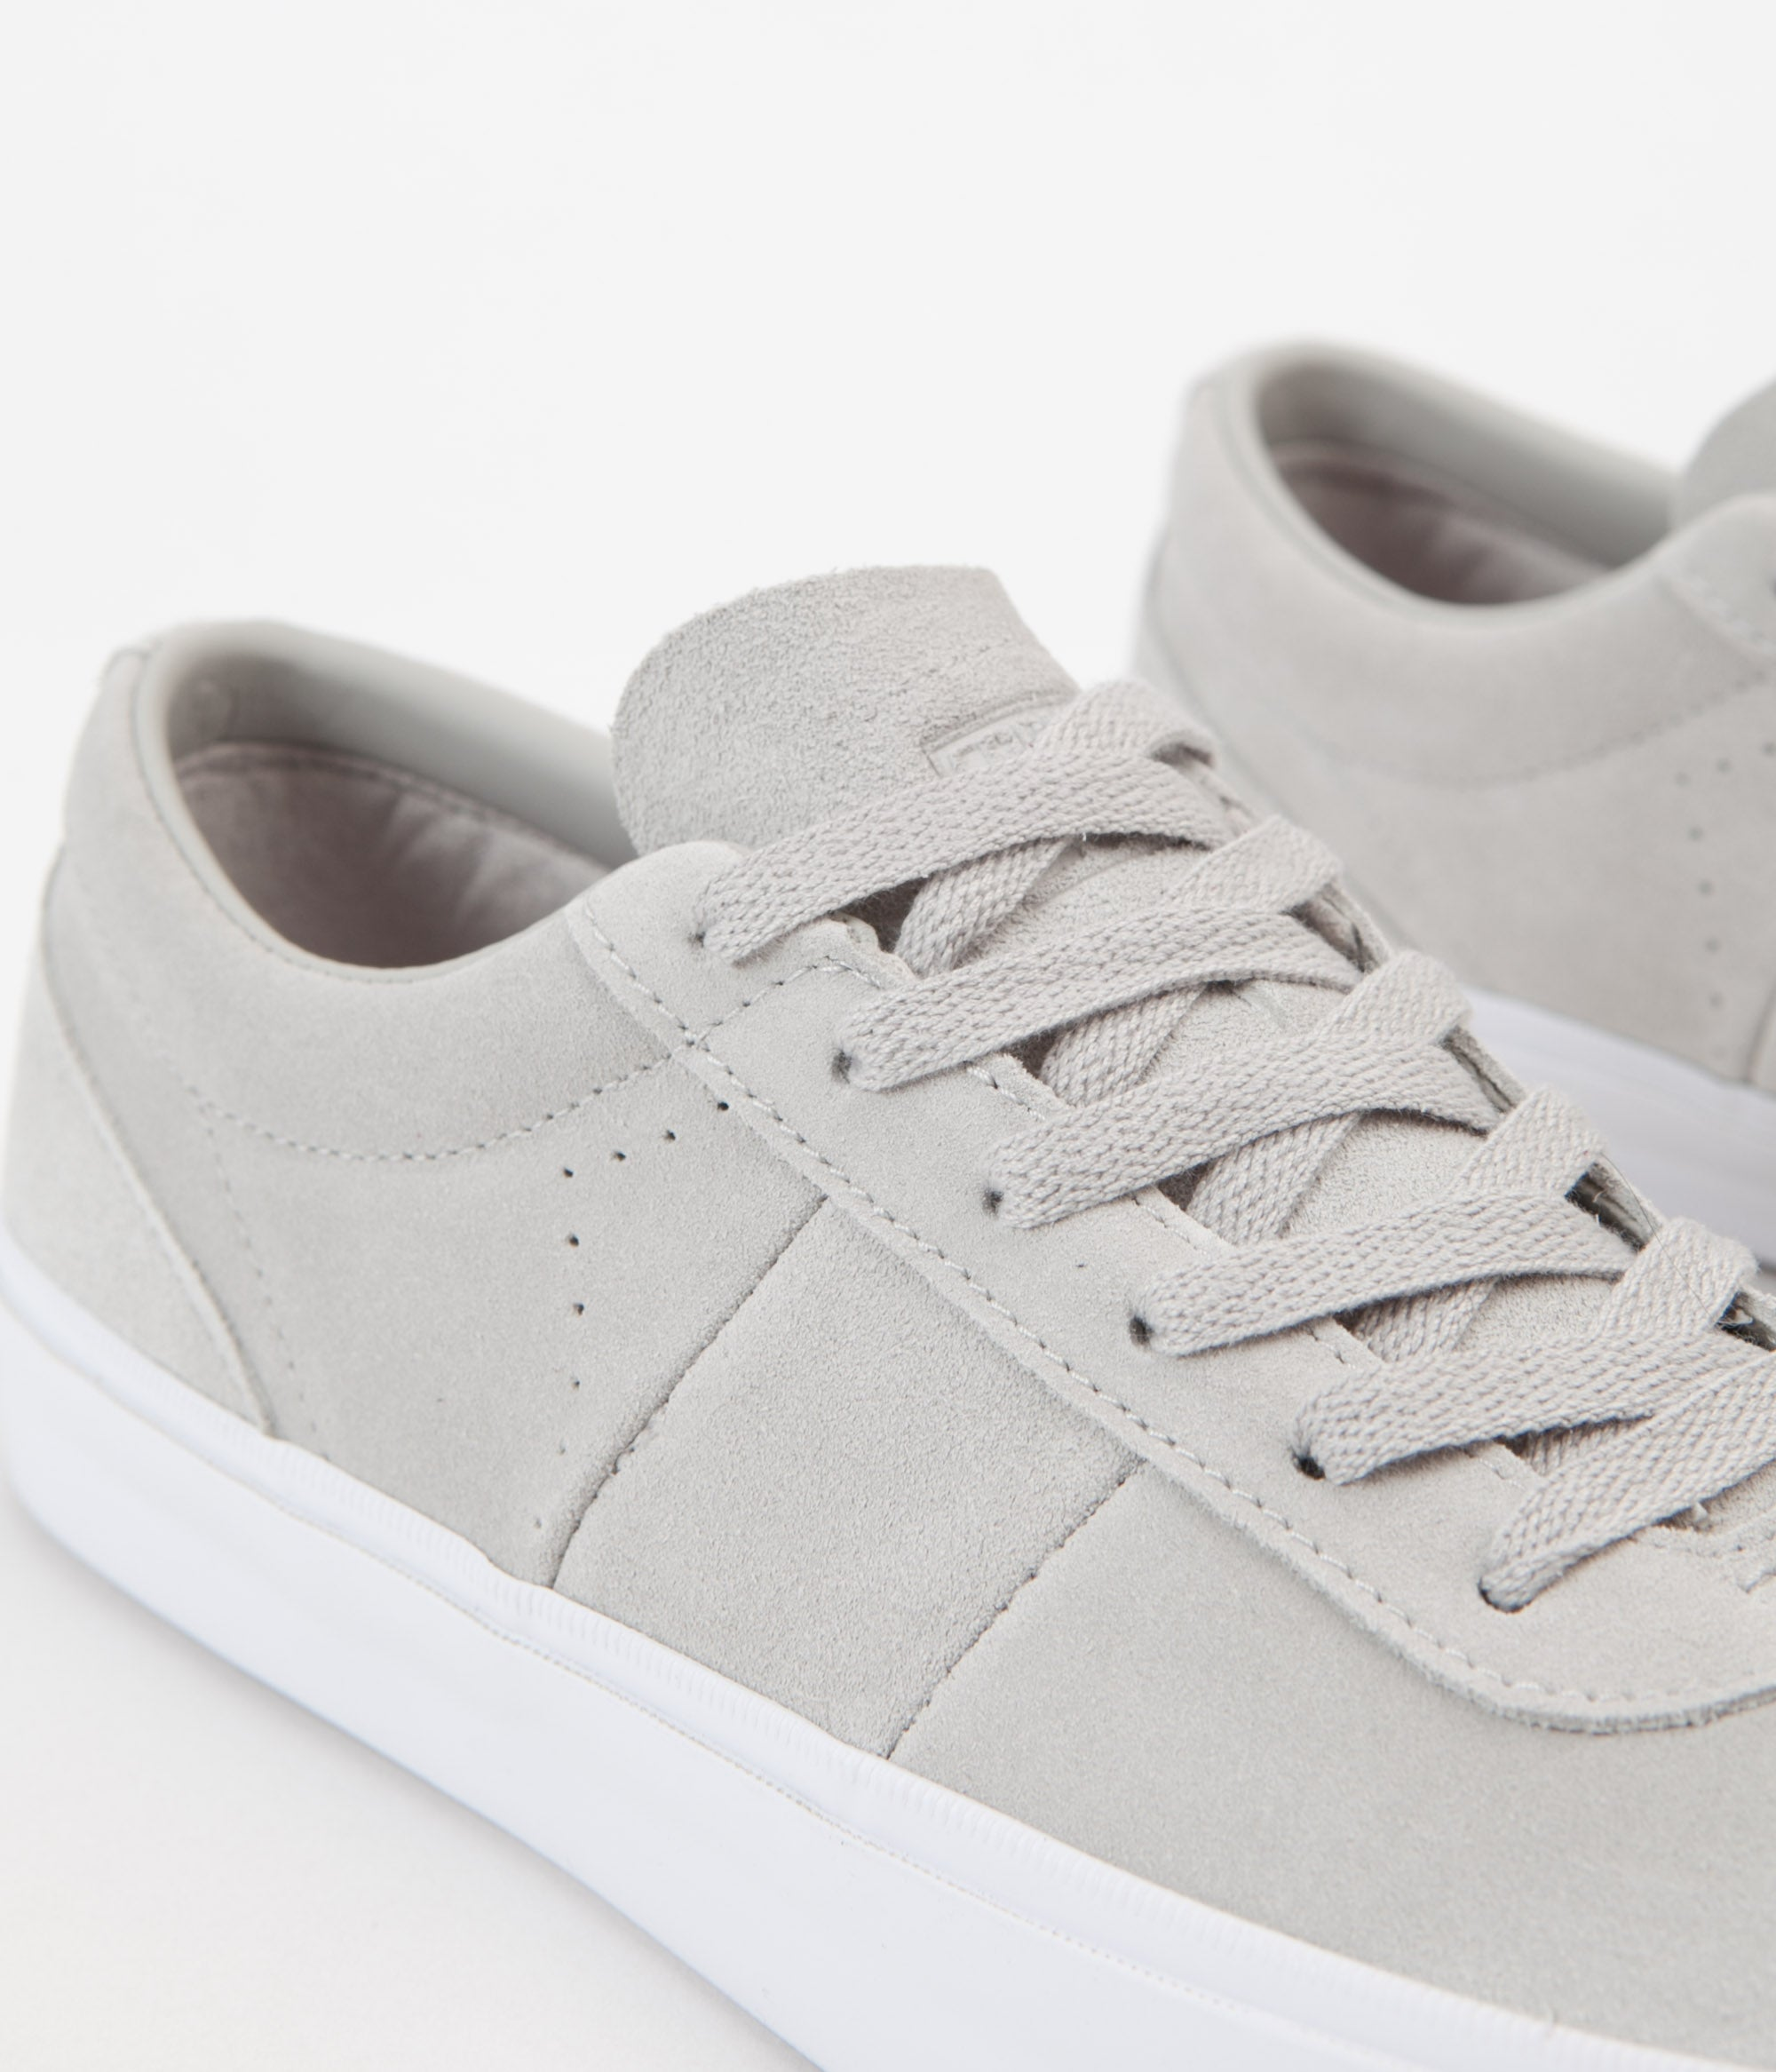 ... new style converse one star cc pro ox shoes pale grey pale grey deep  bordeaux 3573d bf751f610